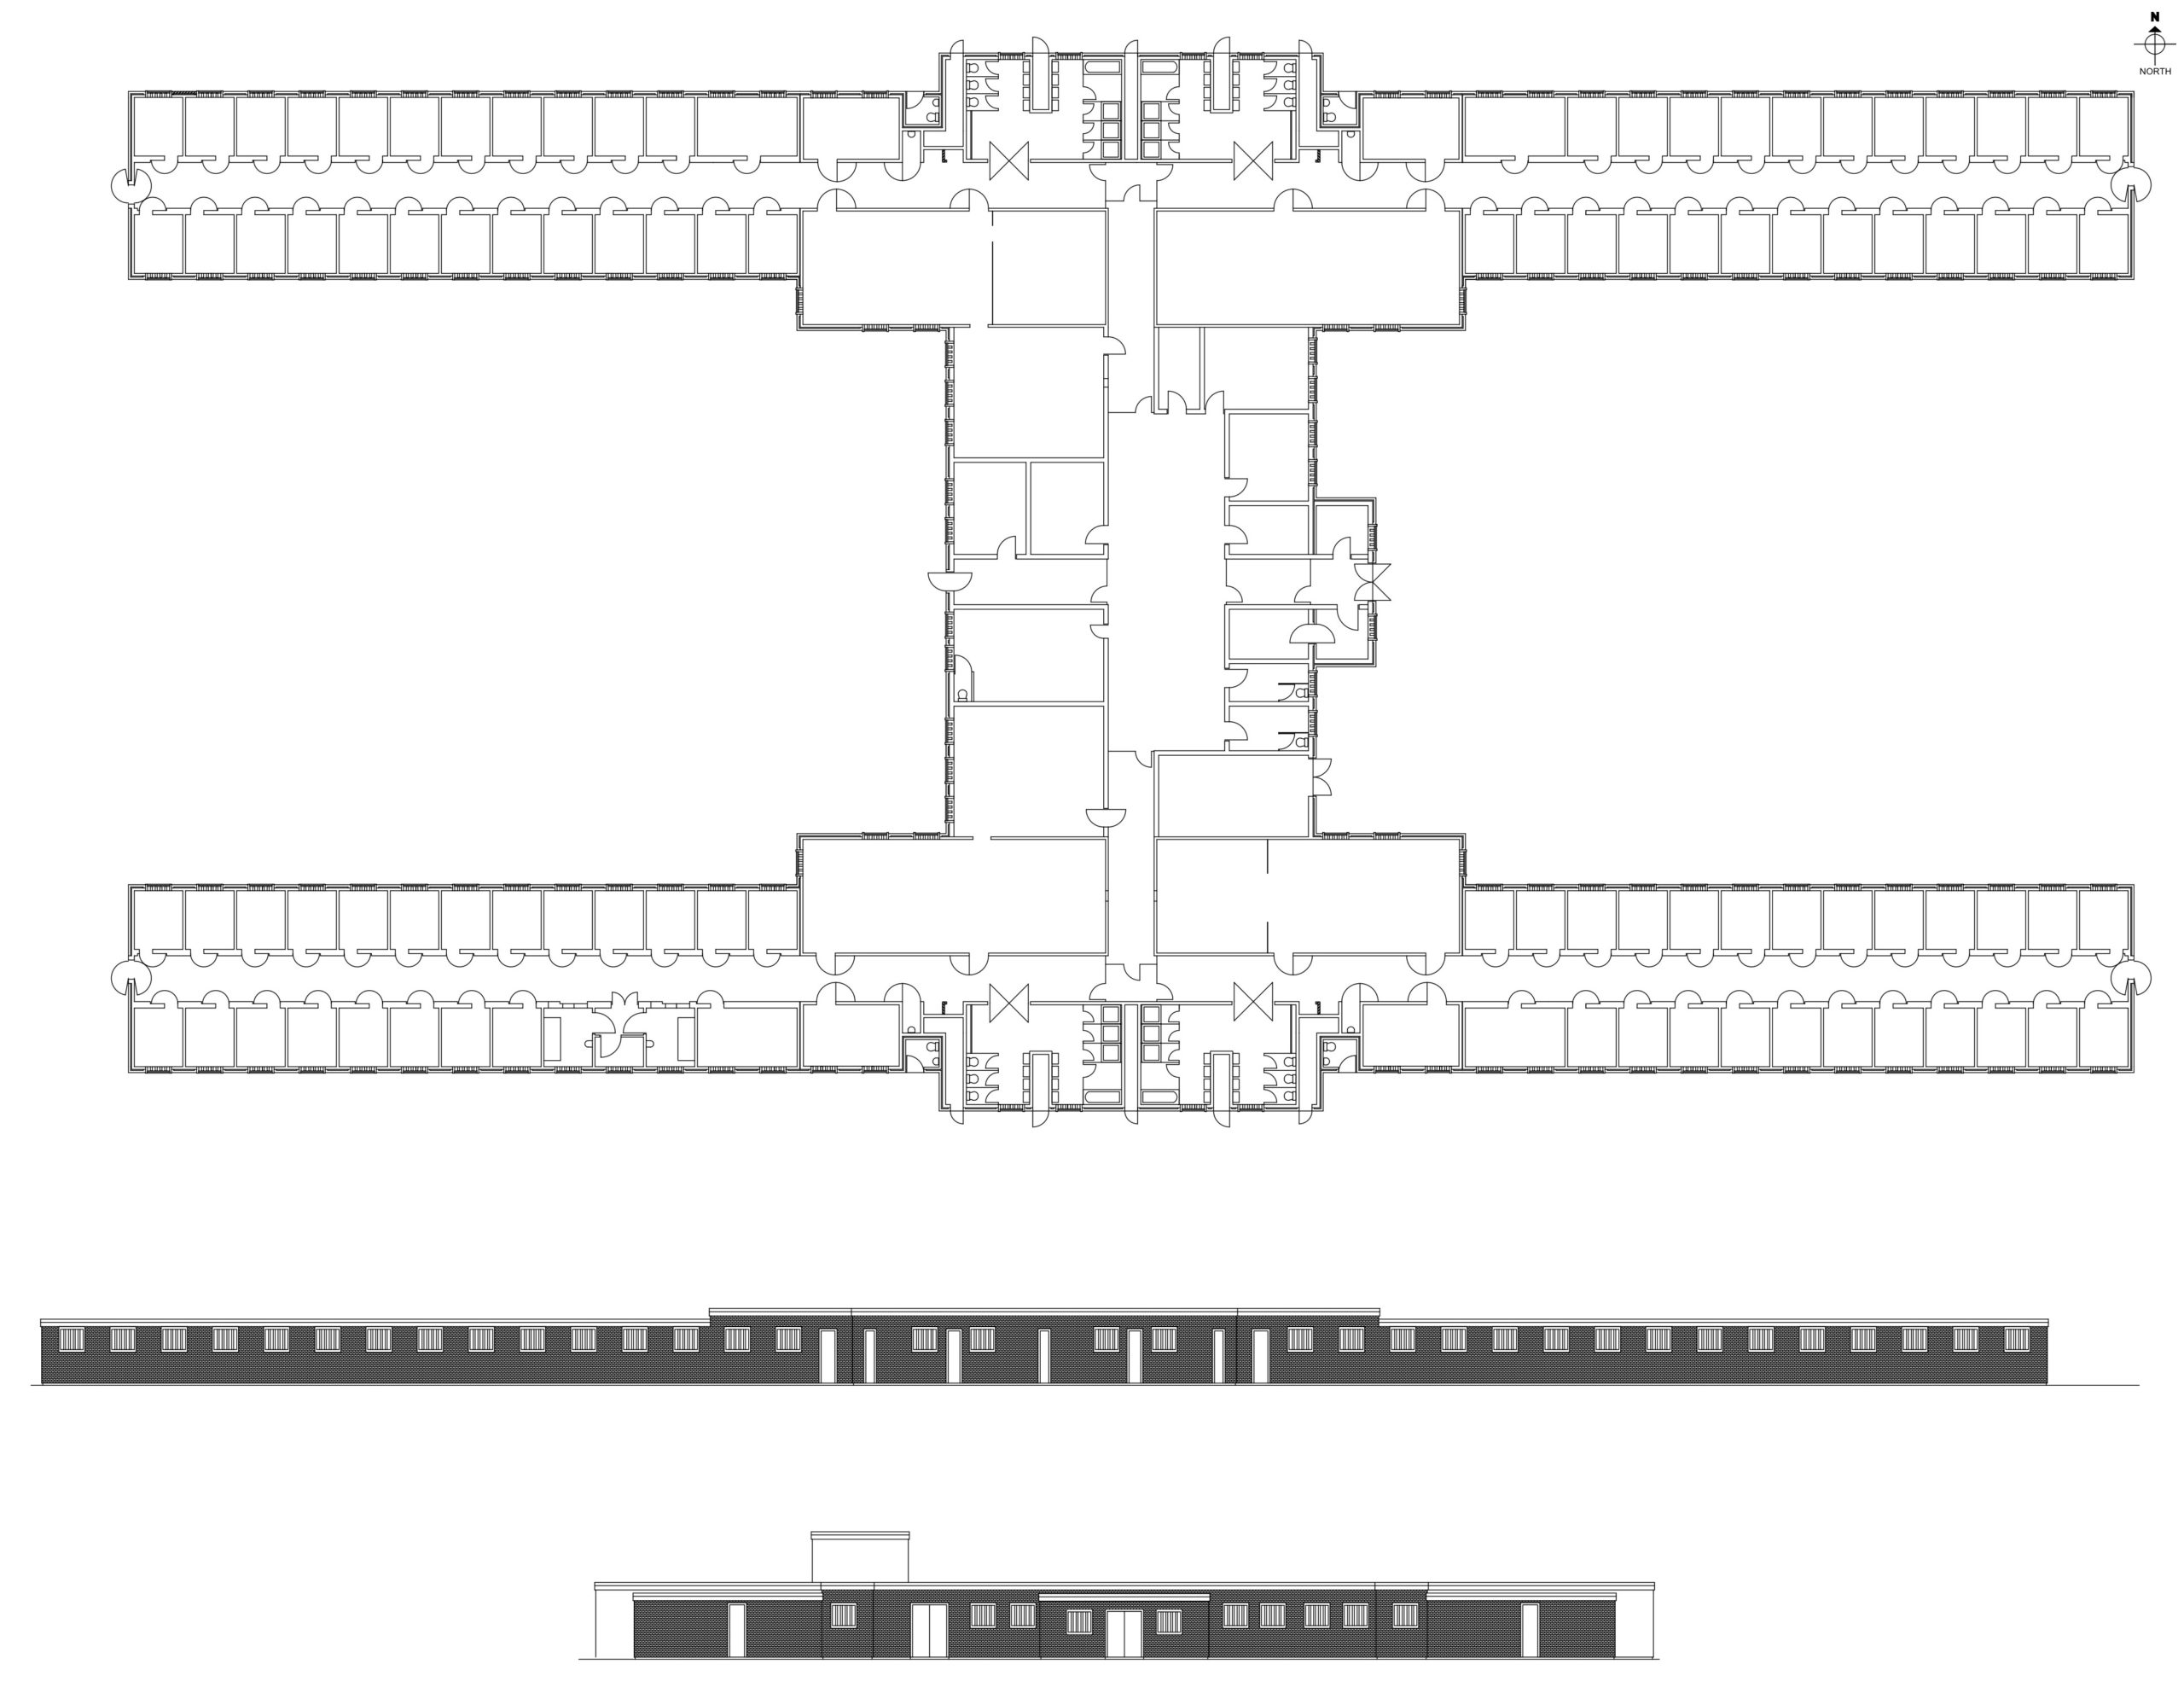 H-Block 6 Plan and elevations in the archive of Steve Jensen Design.